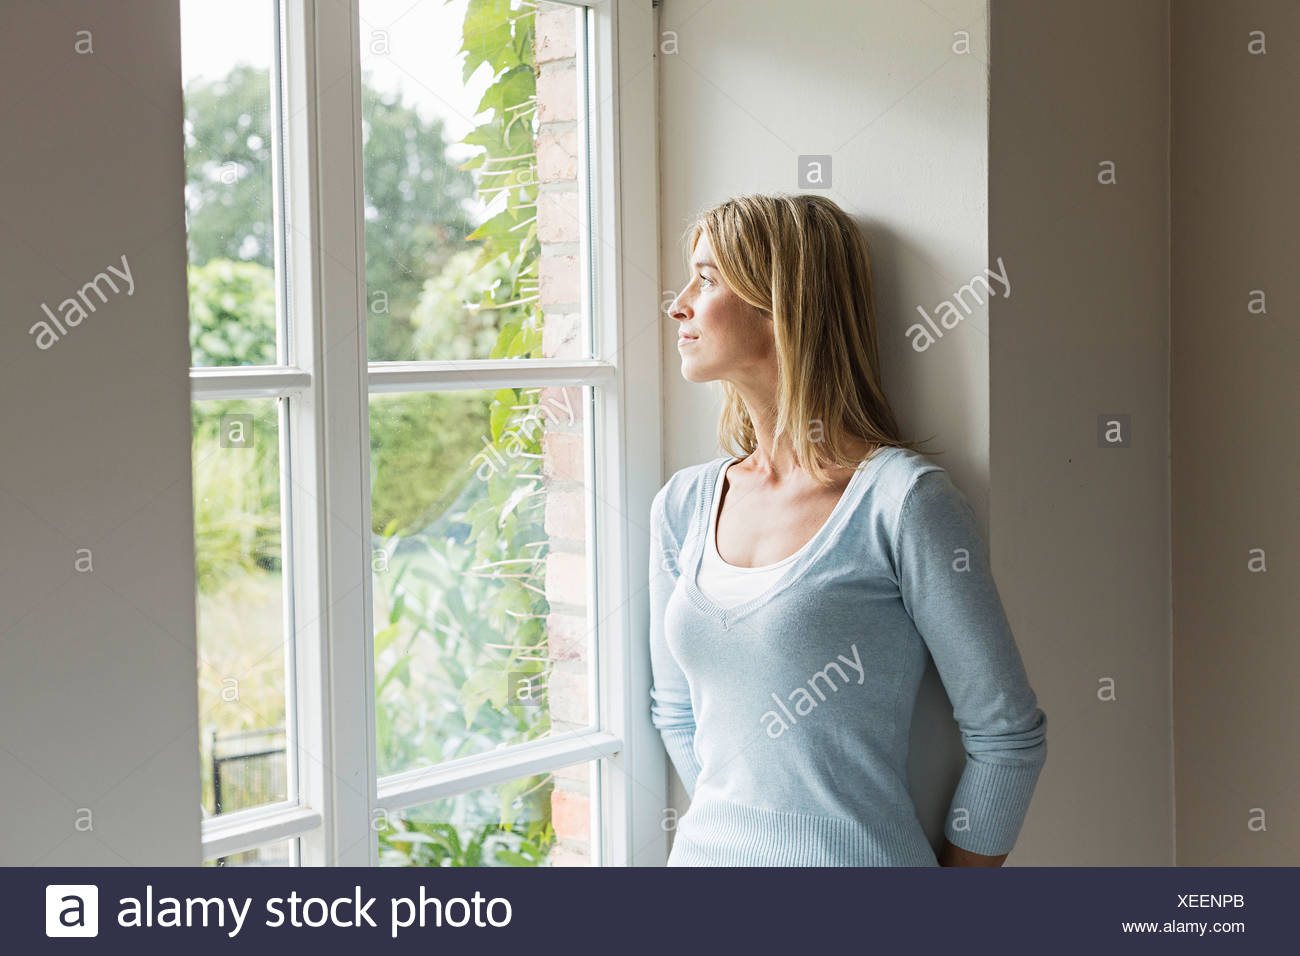 Portrait of mid adult woman looking out of window - Stock Image